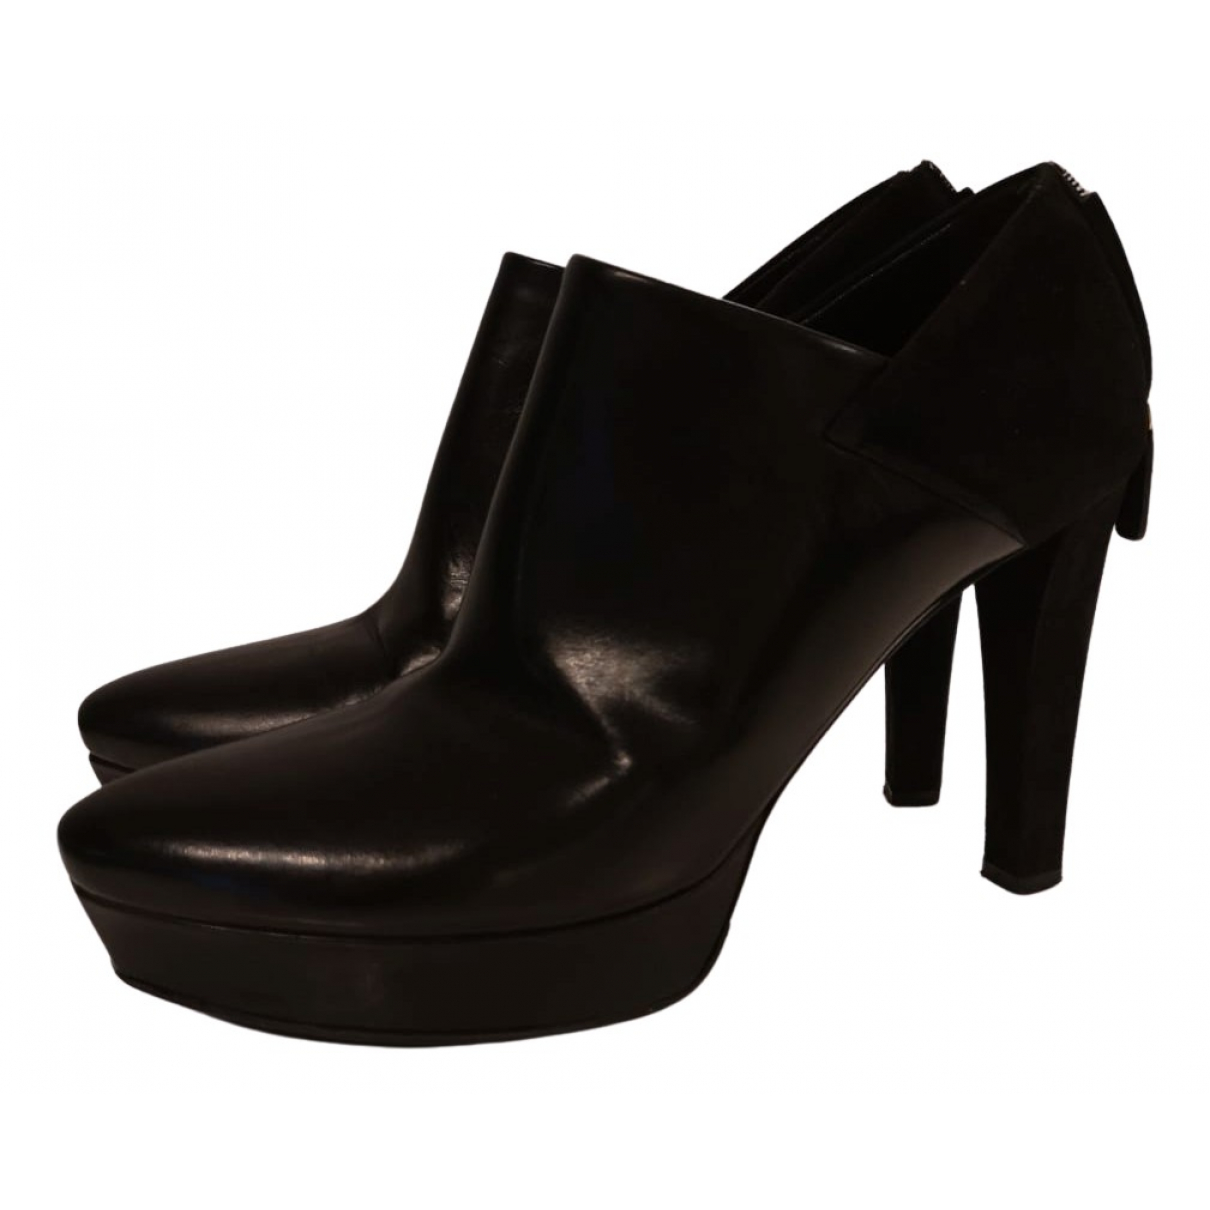 Gucci N Brown Leather Ankle boots for Women 38.5 EU